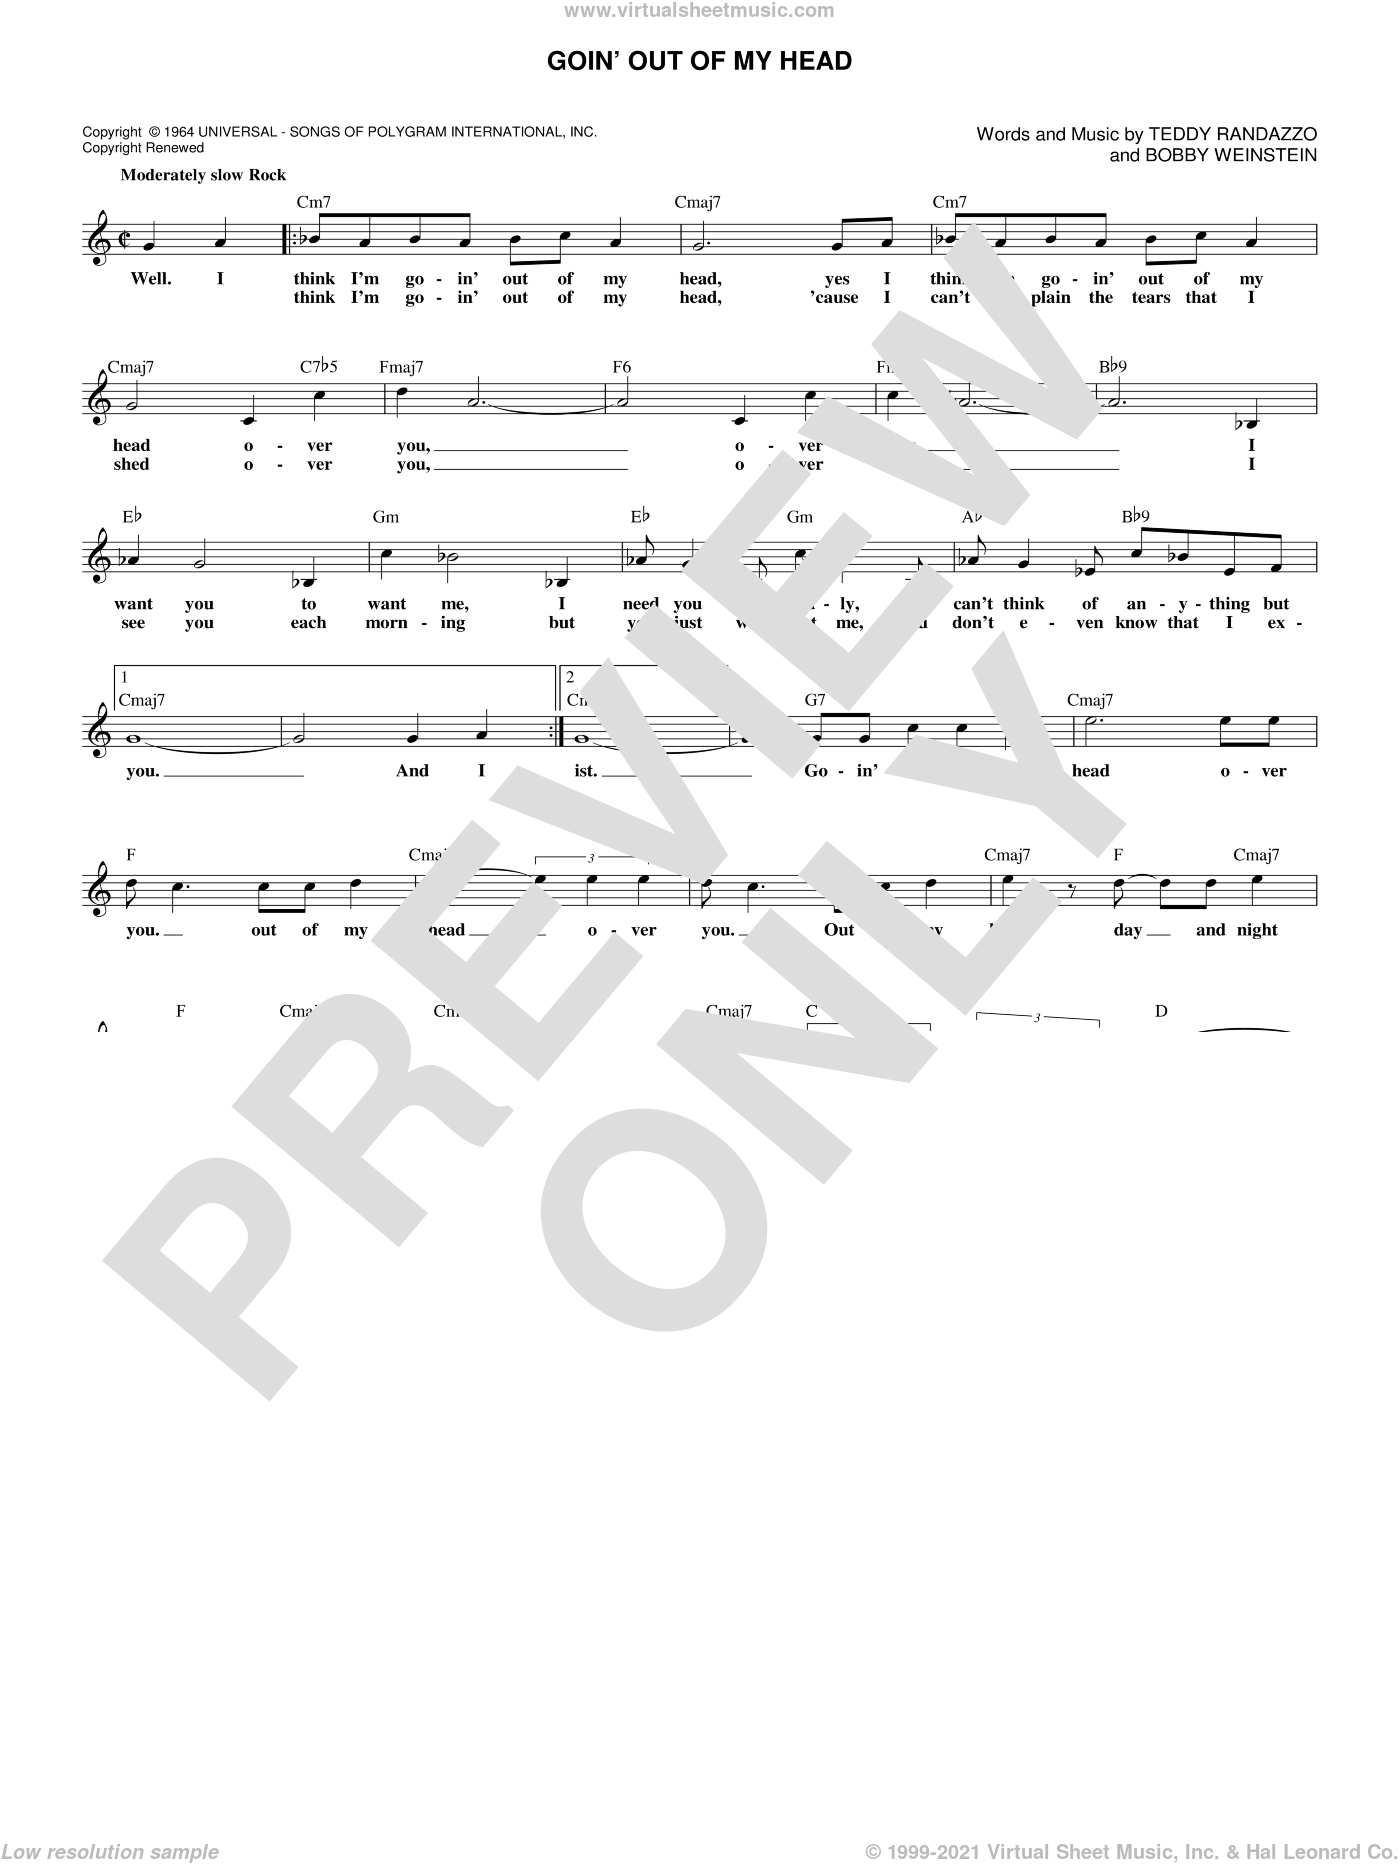 Goin' Out Of My Head sheet music for voice and other instruments (fake book) by Little Anthony & The Imperials, The Lettermen, Bobby Weinstein and Teddy Randazzo, intermediate skill level